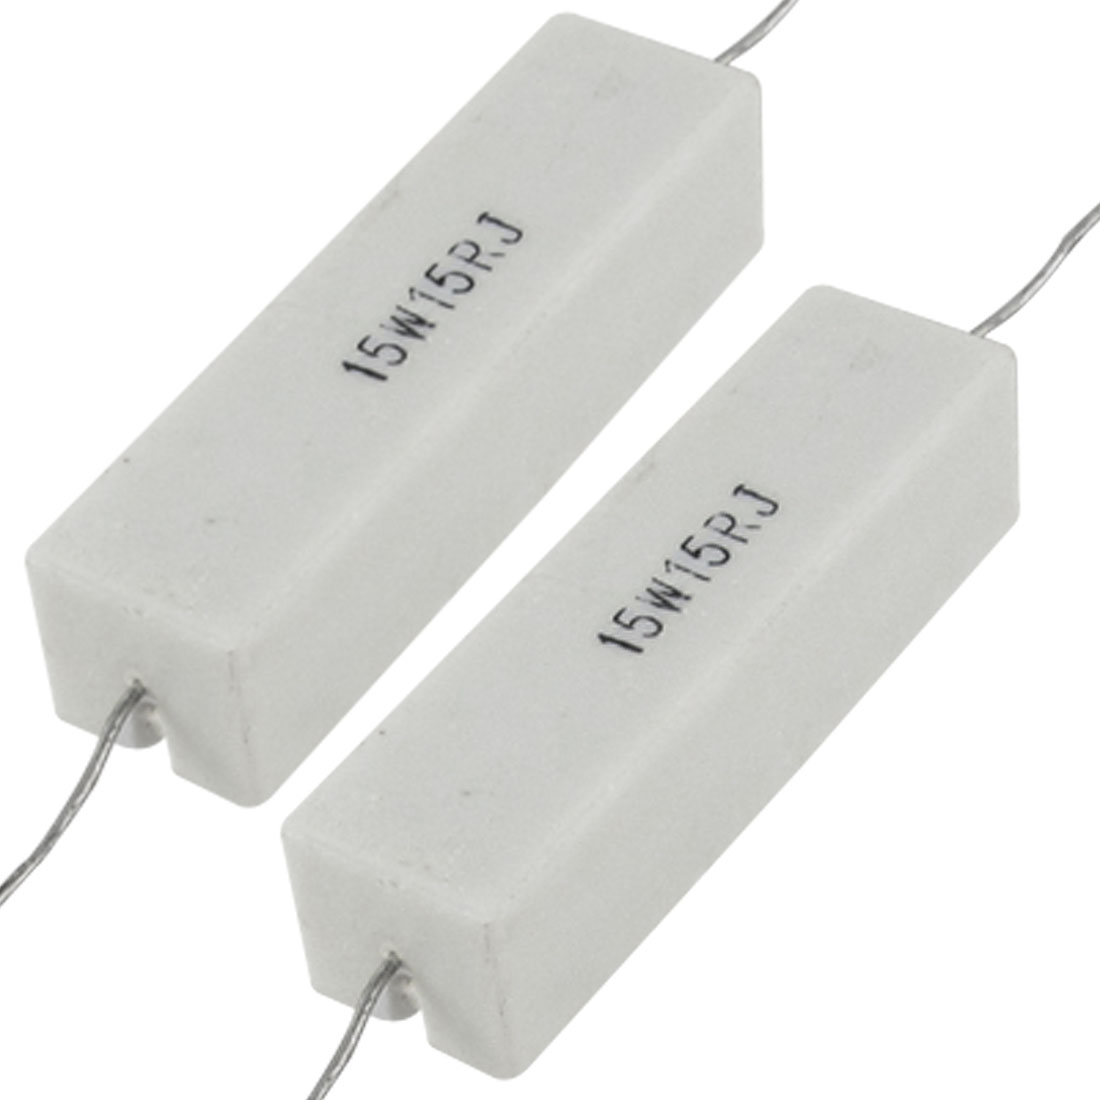 15 15R Ohm 5% 15W Wire Wound Ceramic Cement Resistor 2 Pcs